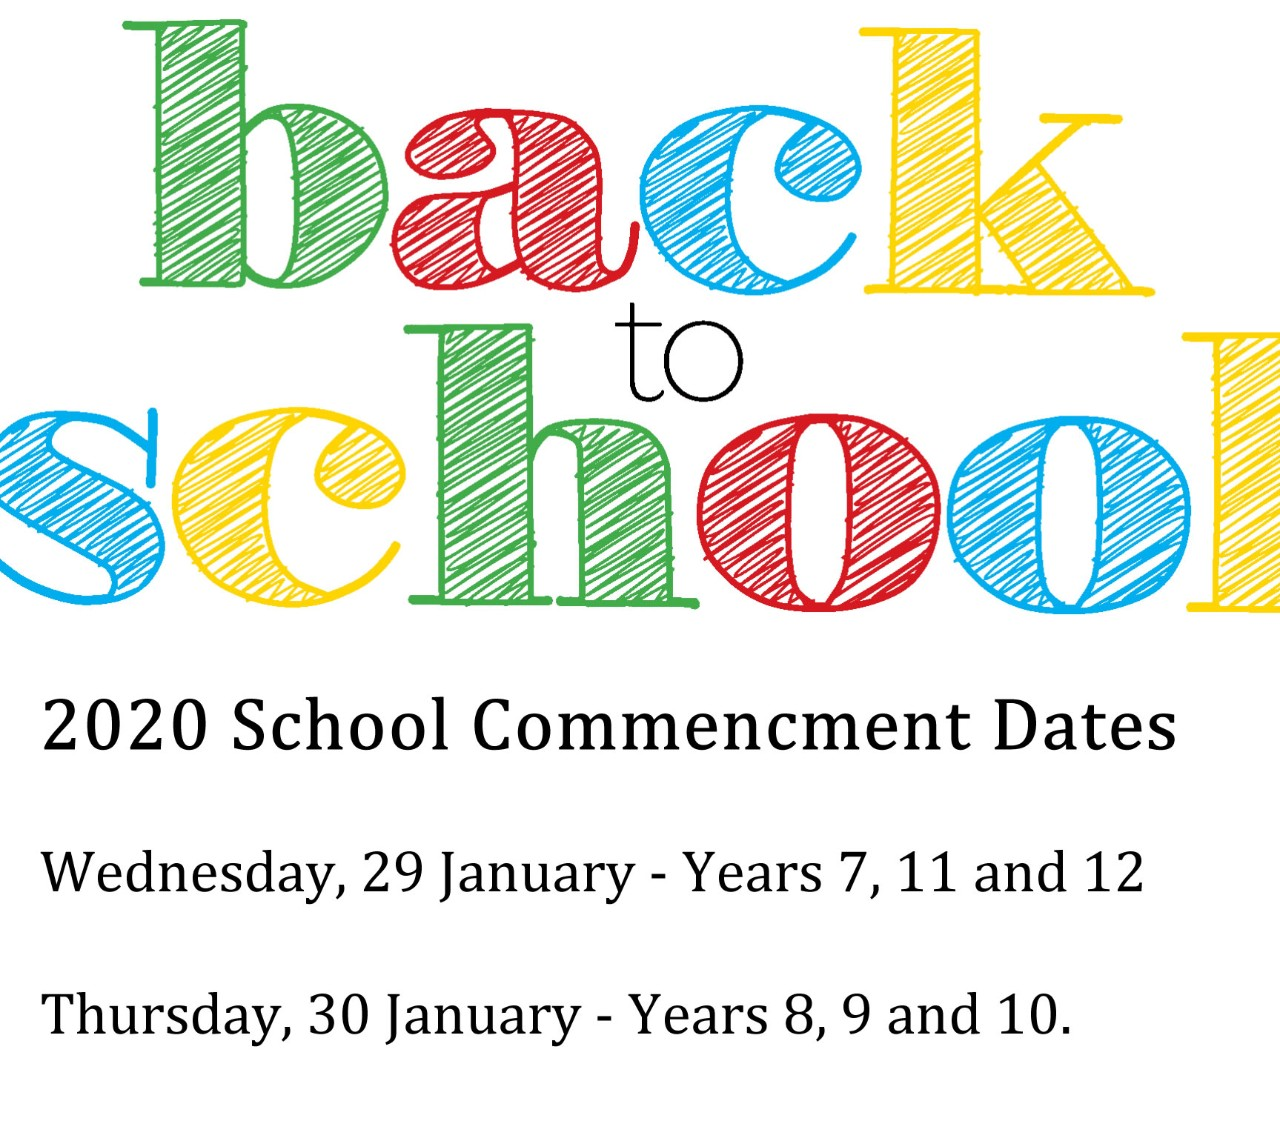 School Commencement Dates, 2020